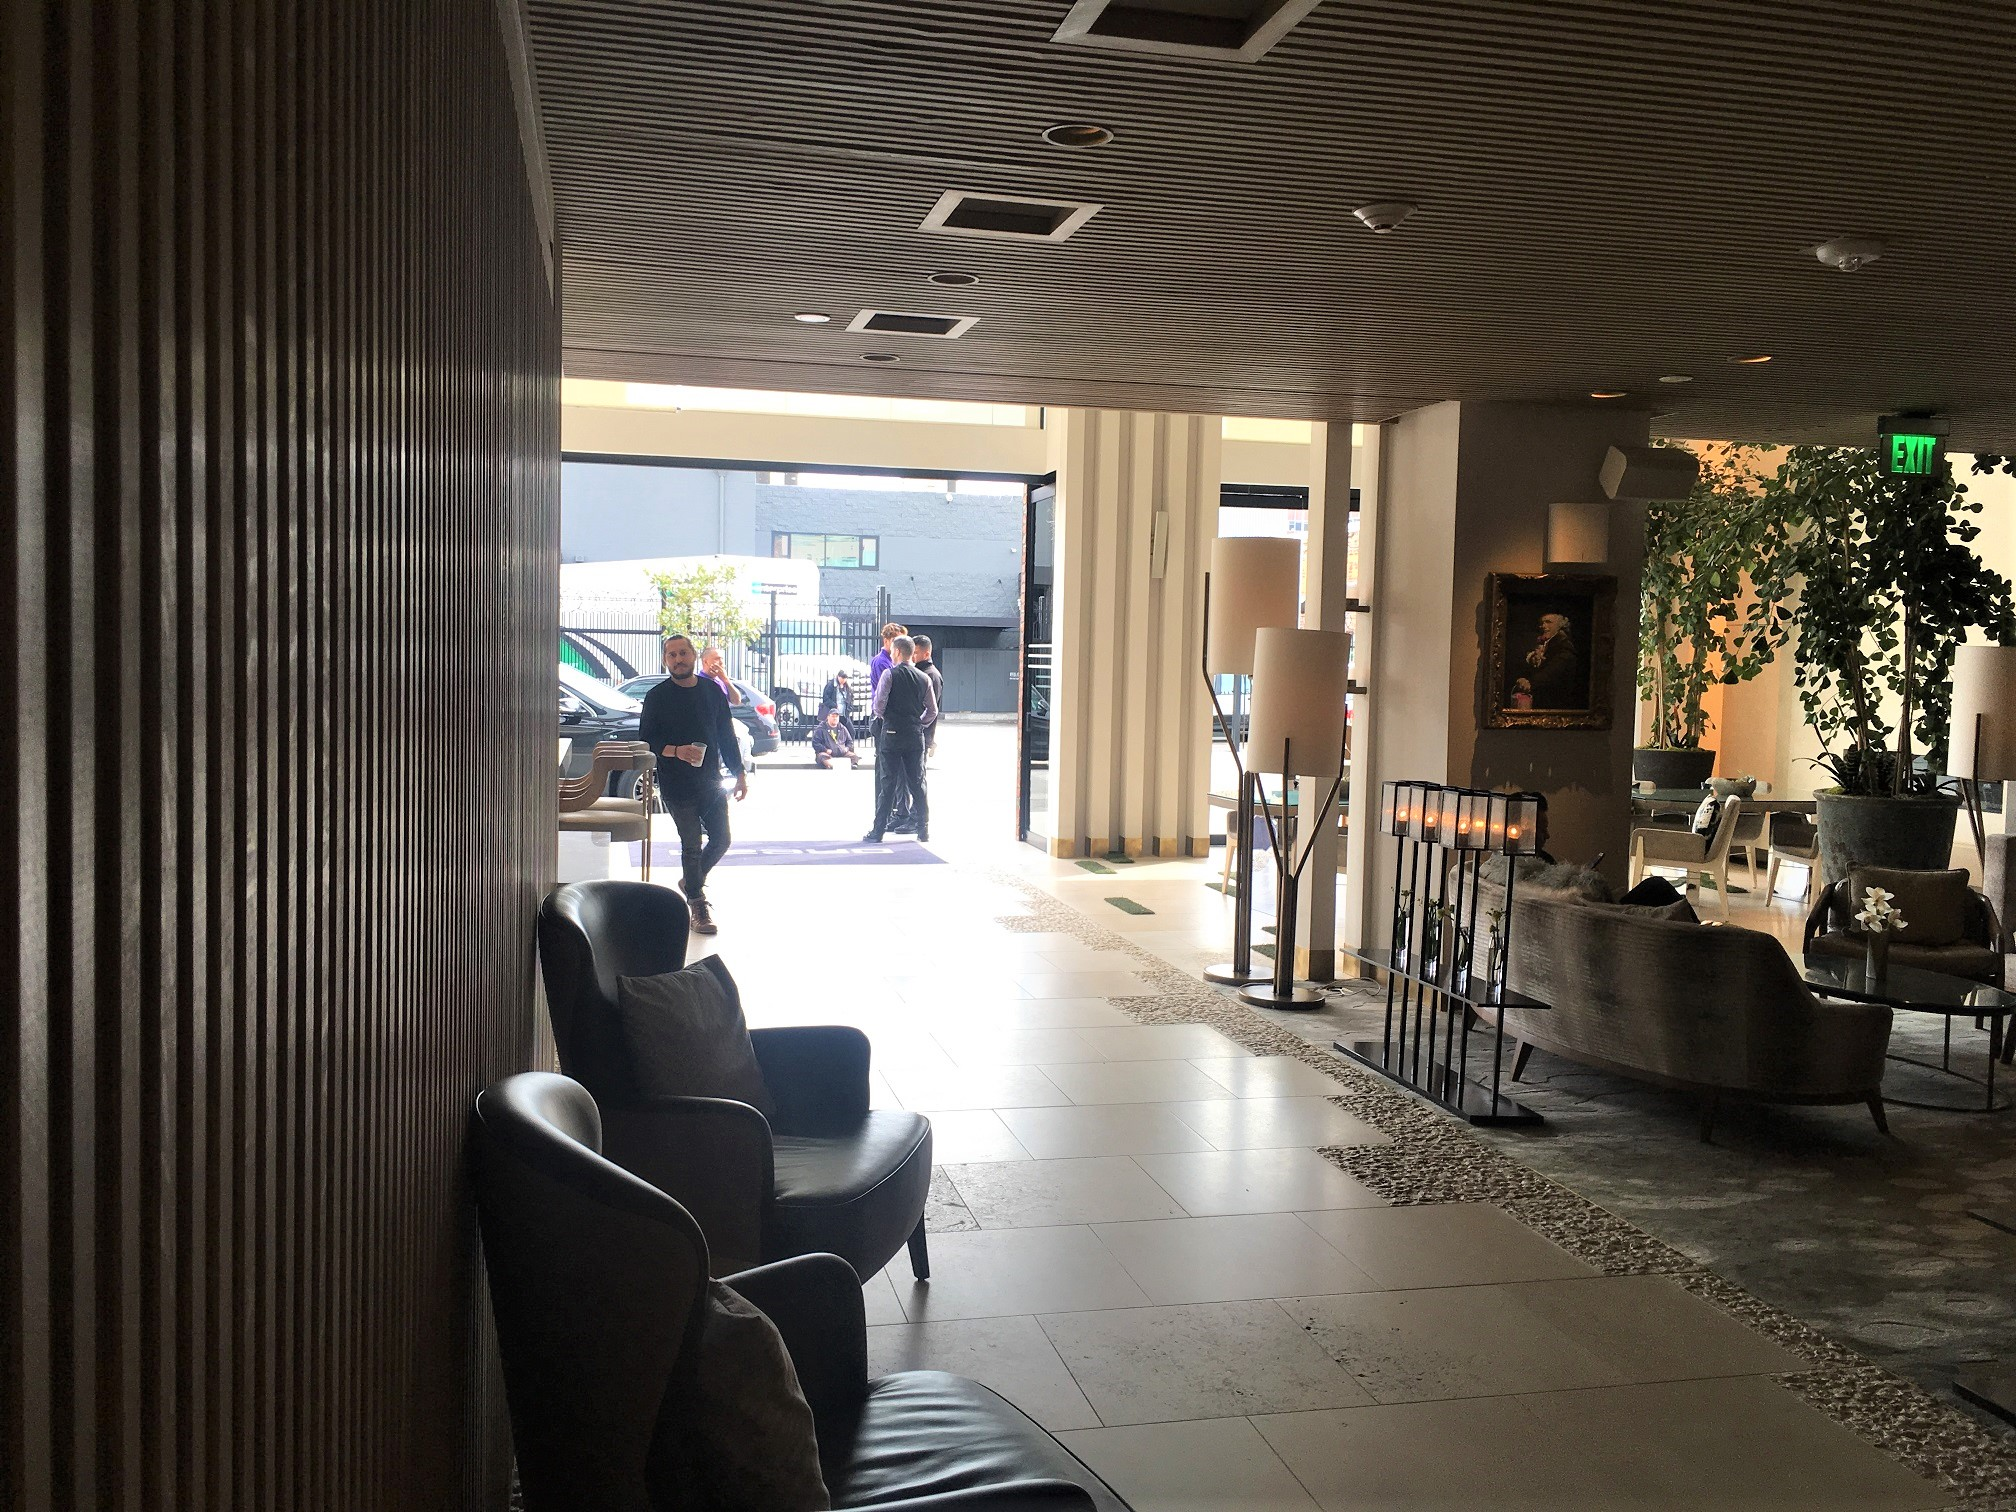 Lobby at the Dream Hotel